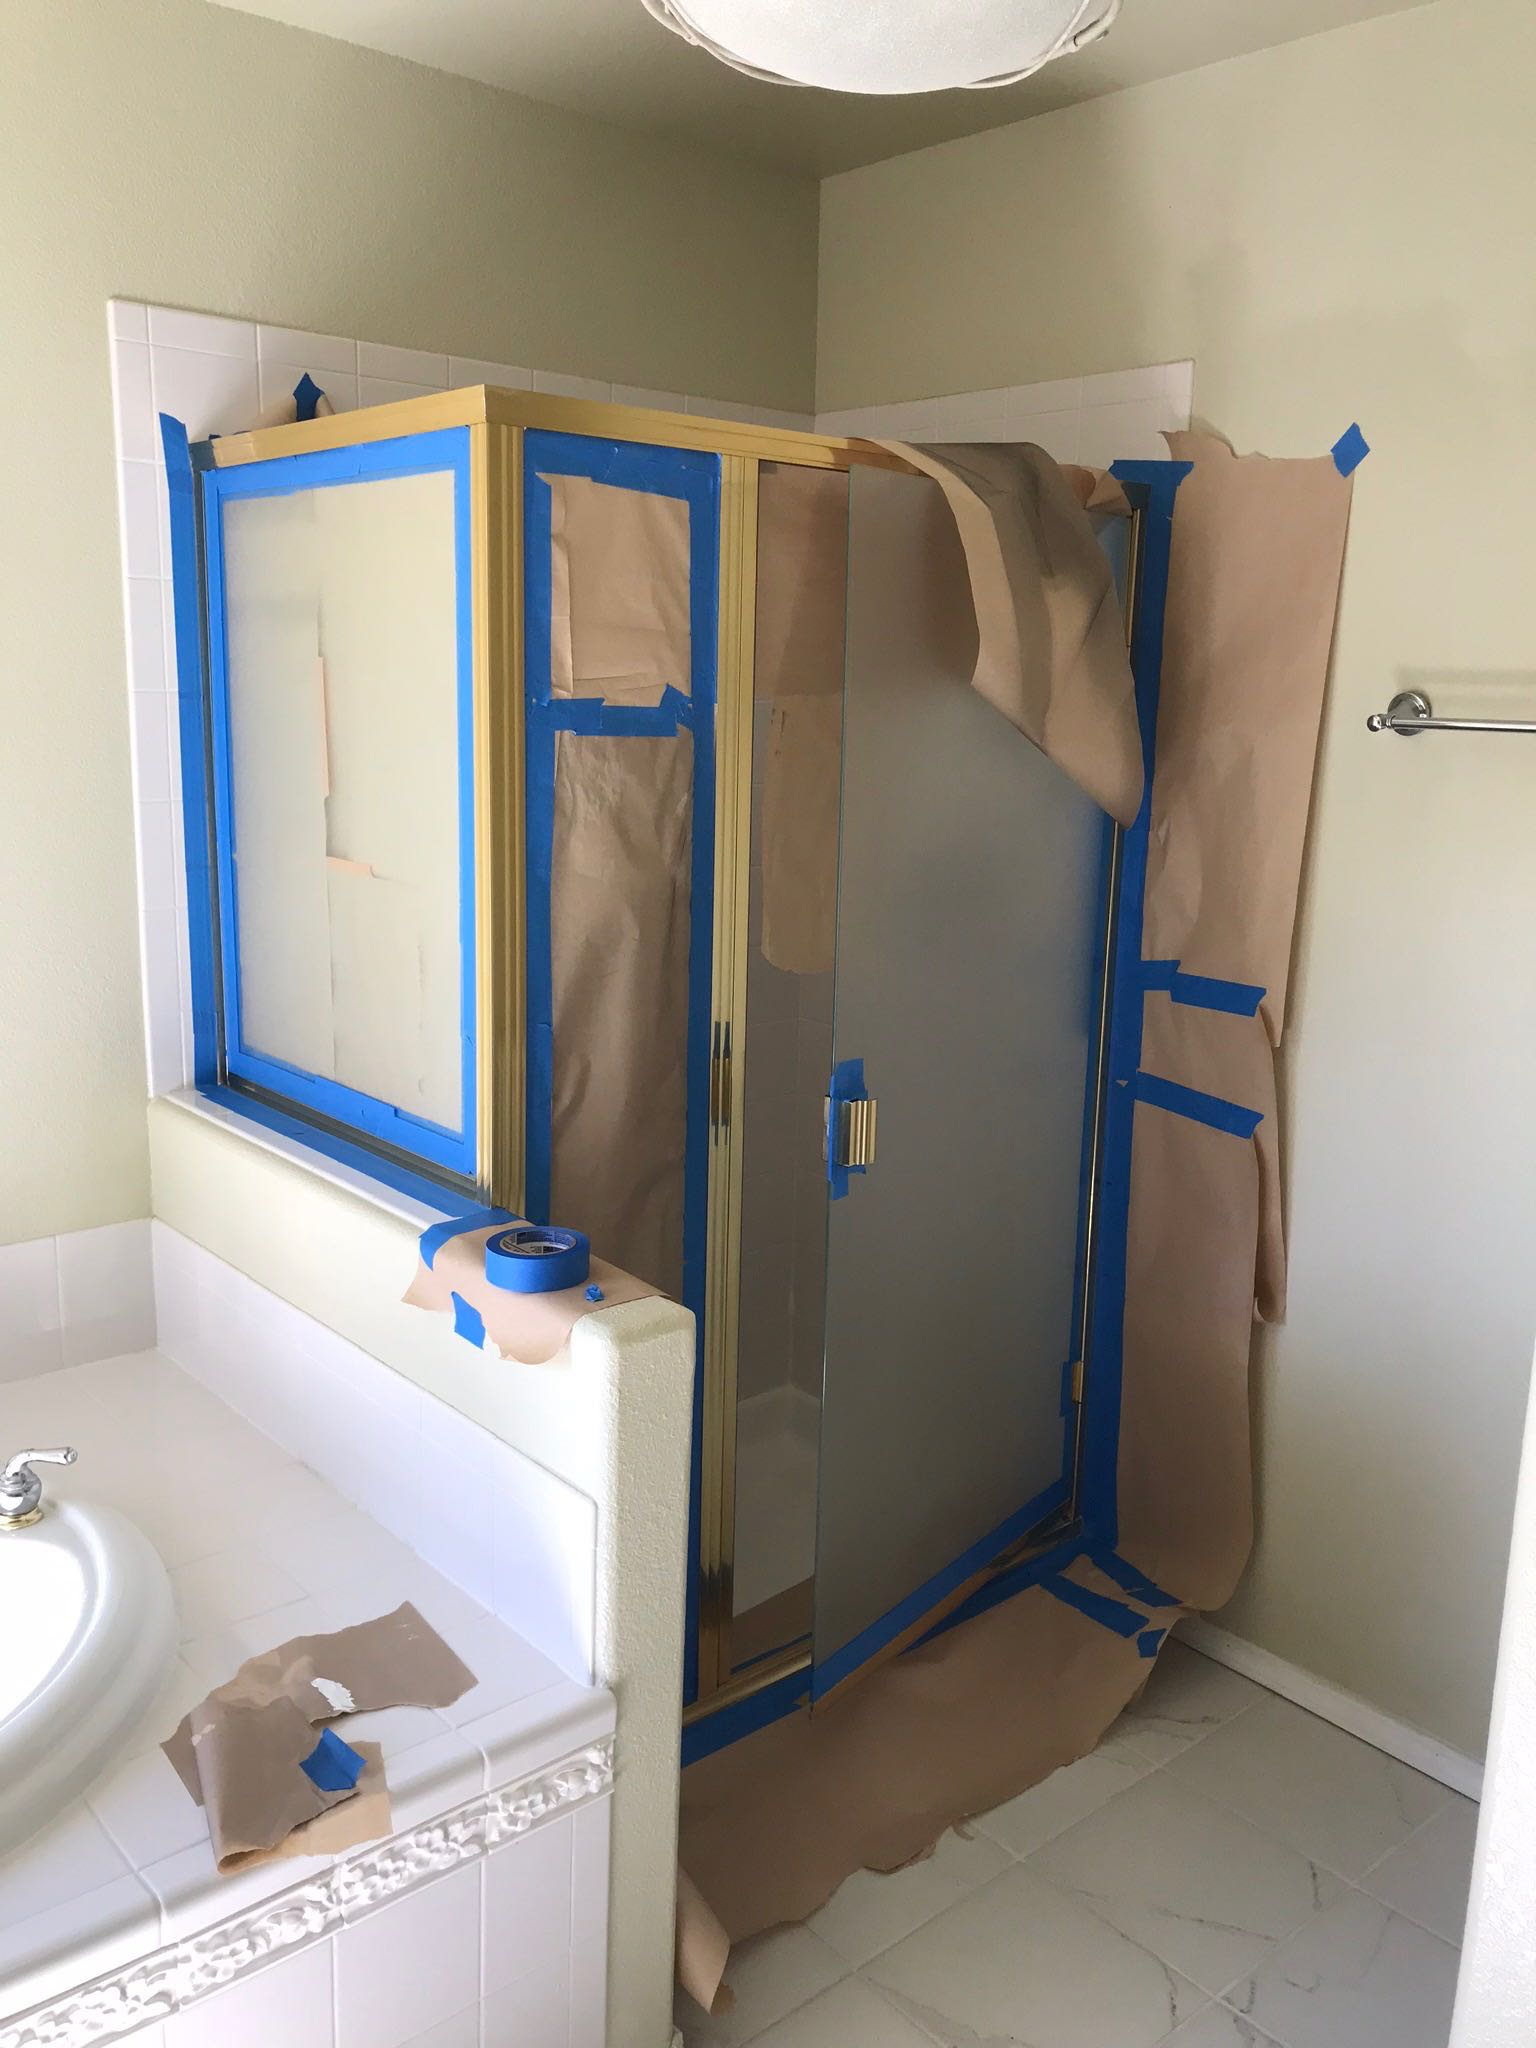 Tape the shower door before spray painting it to cover the brass